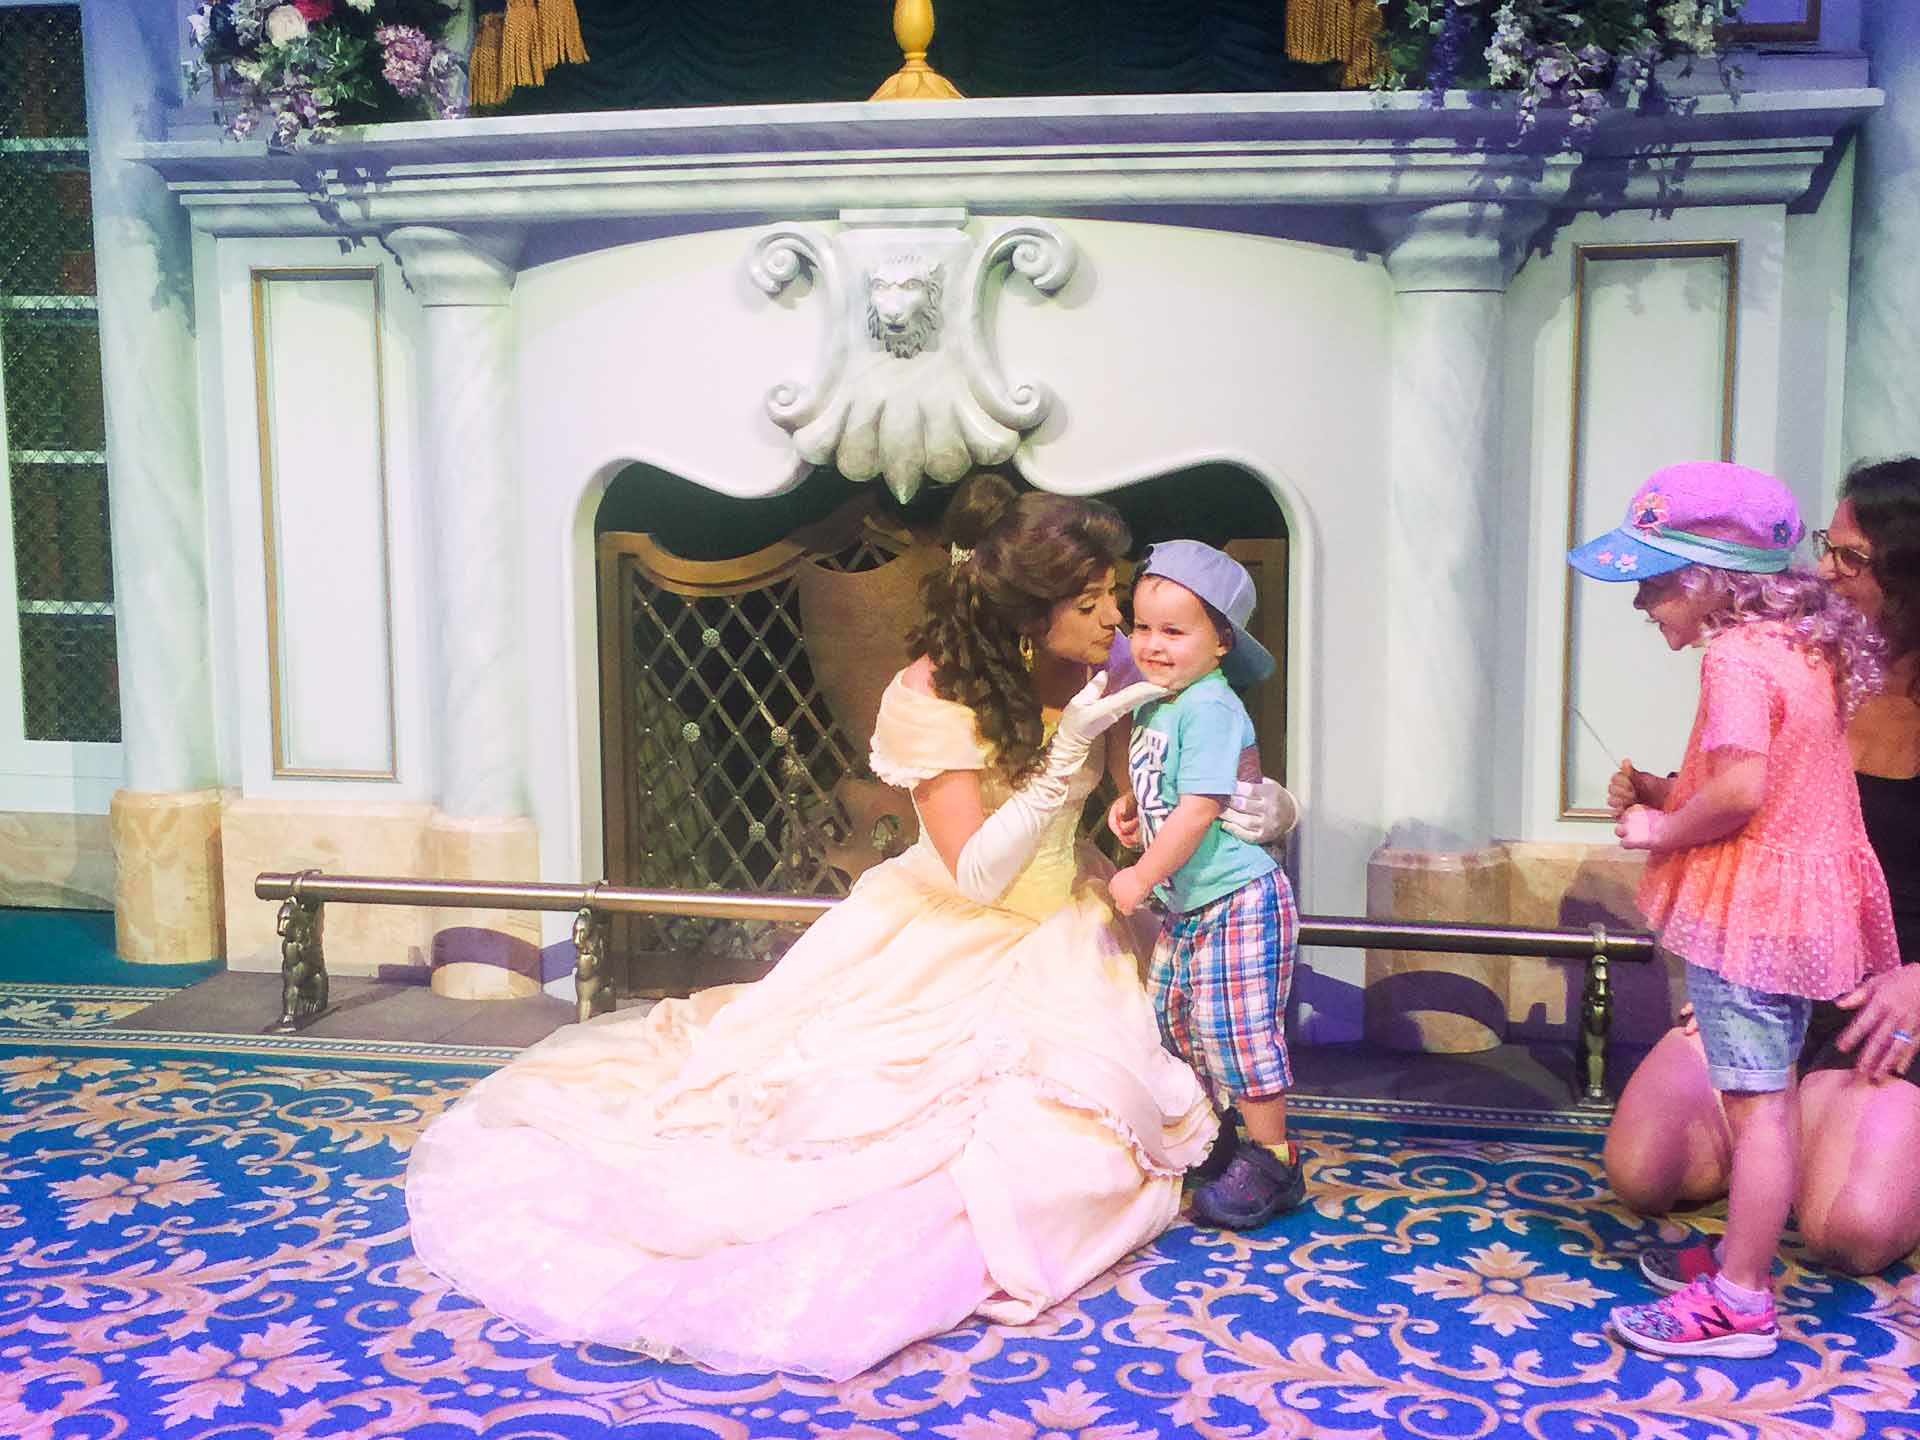 best princess experiences at Disney World - Meeting Belle